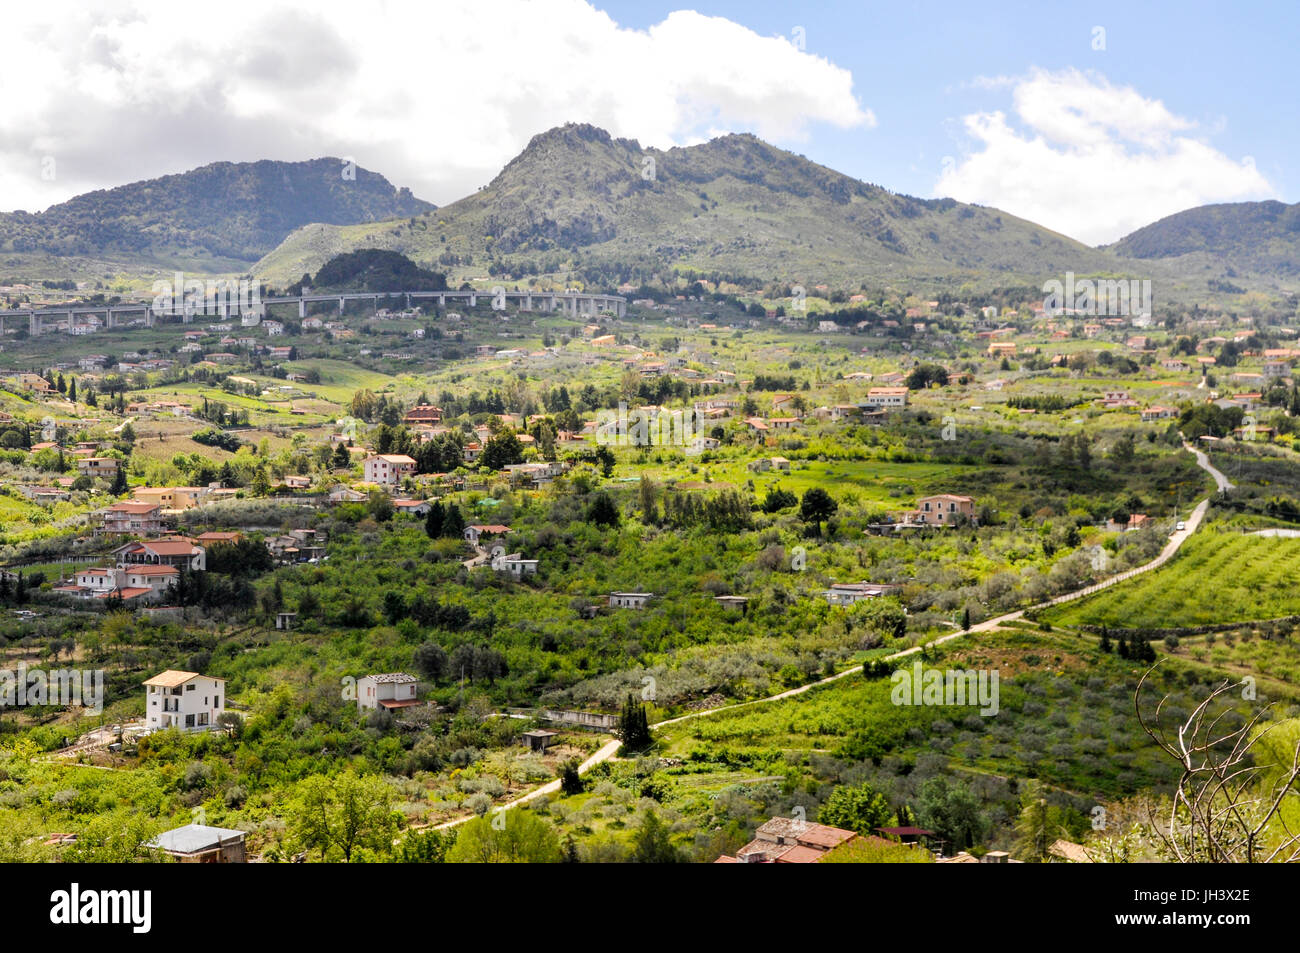 Conca d'Oro valley on the outskirts of Palermo, Sicily, Italy. - Stock Image